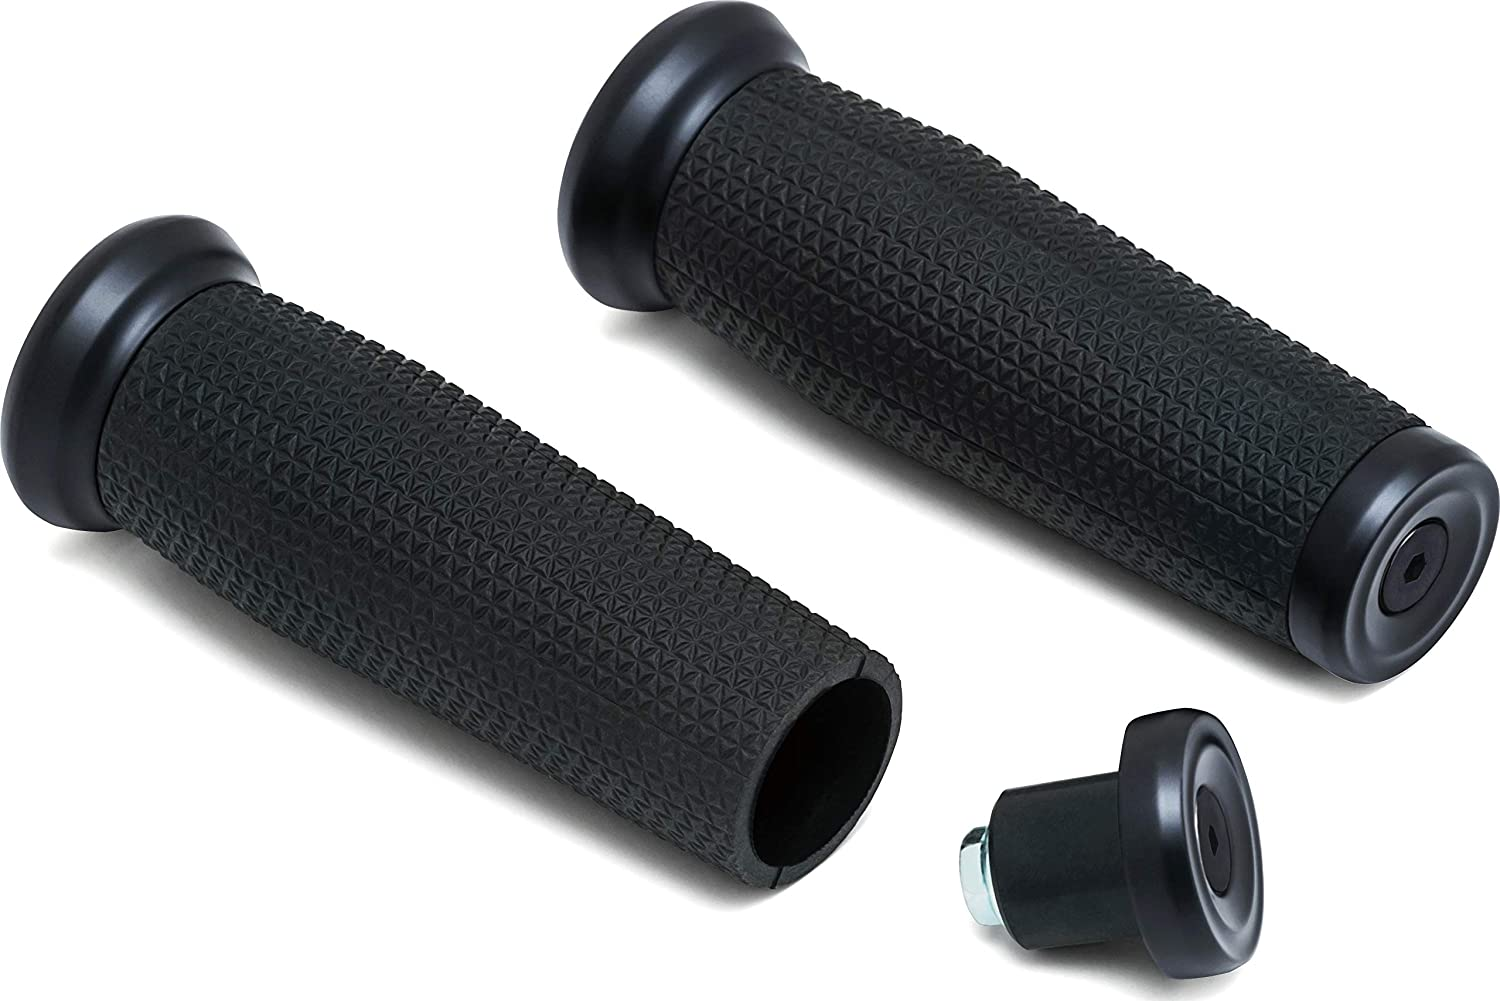 Kuryakyn 5949 Motorcycle Handlebar Accessory: Thresher Grips with End Caps Satin Black 1 Pair Universal Fit for 1 Diameter Handlebars